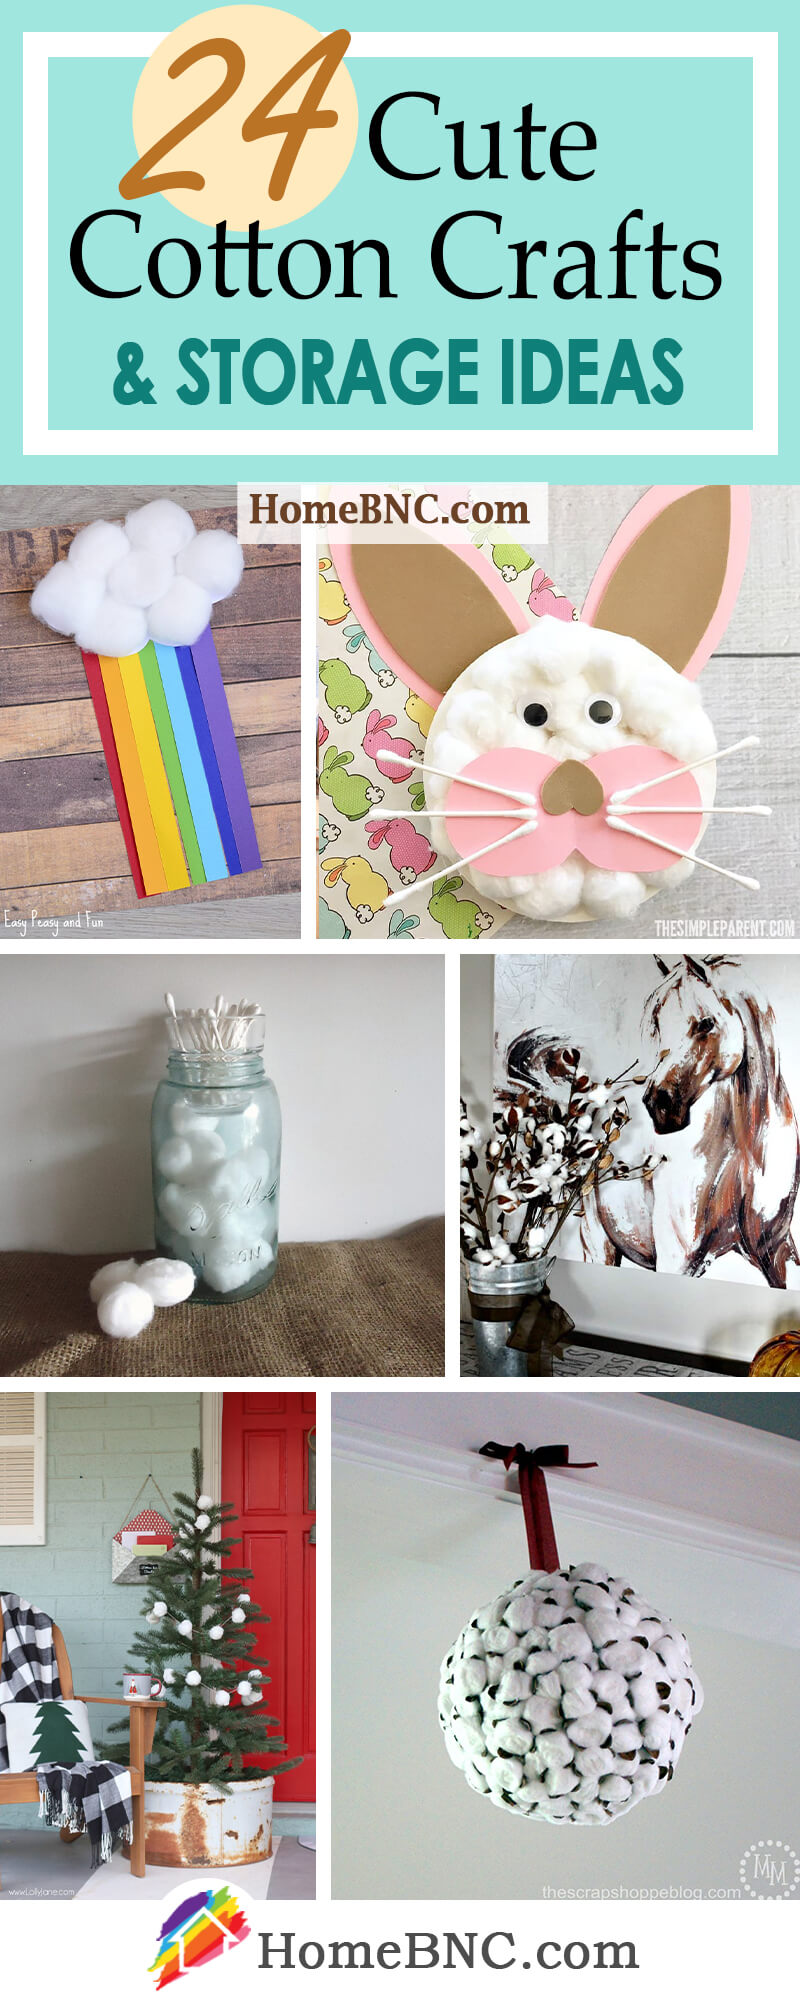 24 Best Cotton Crafts For The Most Adorable Home Decorations In 2021